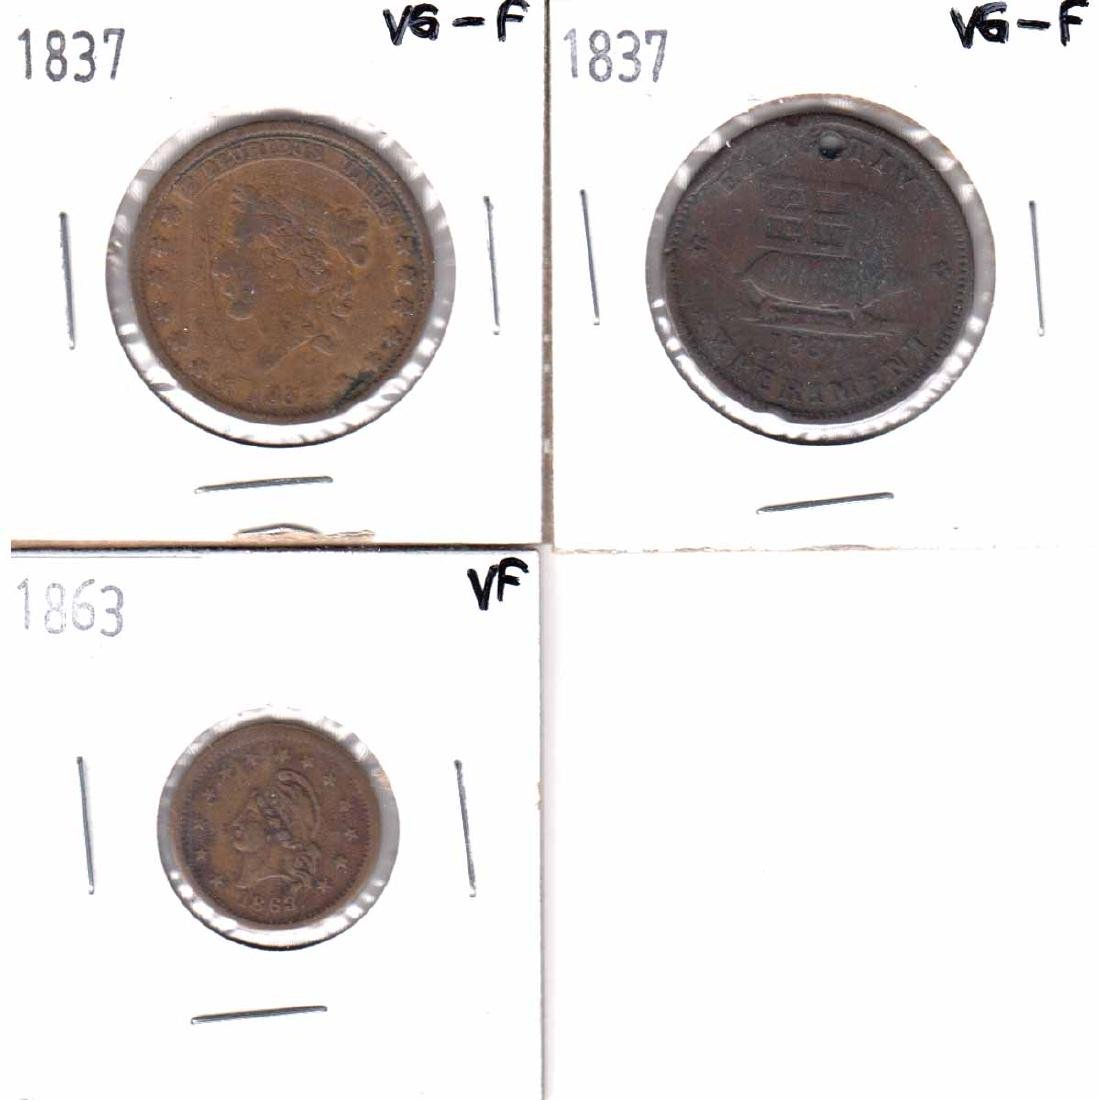 Lot of 3x USA Tokens. You will receive 1837 Mint Drop